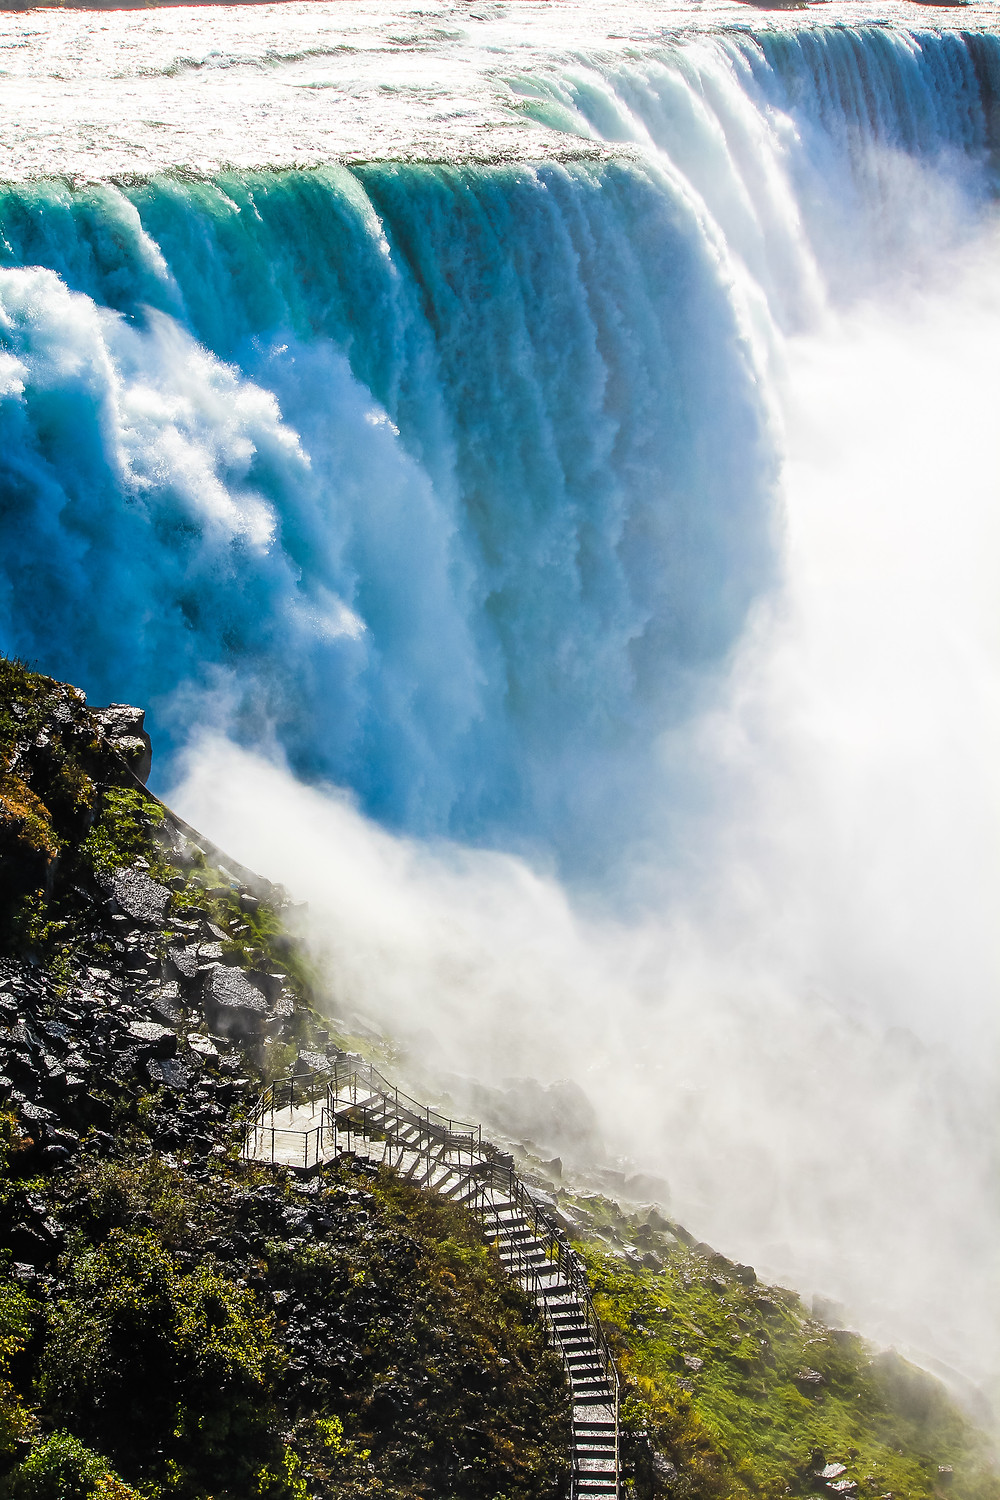 maid of the mist, cave of the winds, Niagara Falls attractions, Niagara Falls New York, Niagara Falls things to do